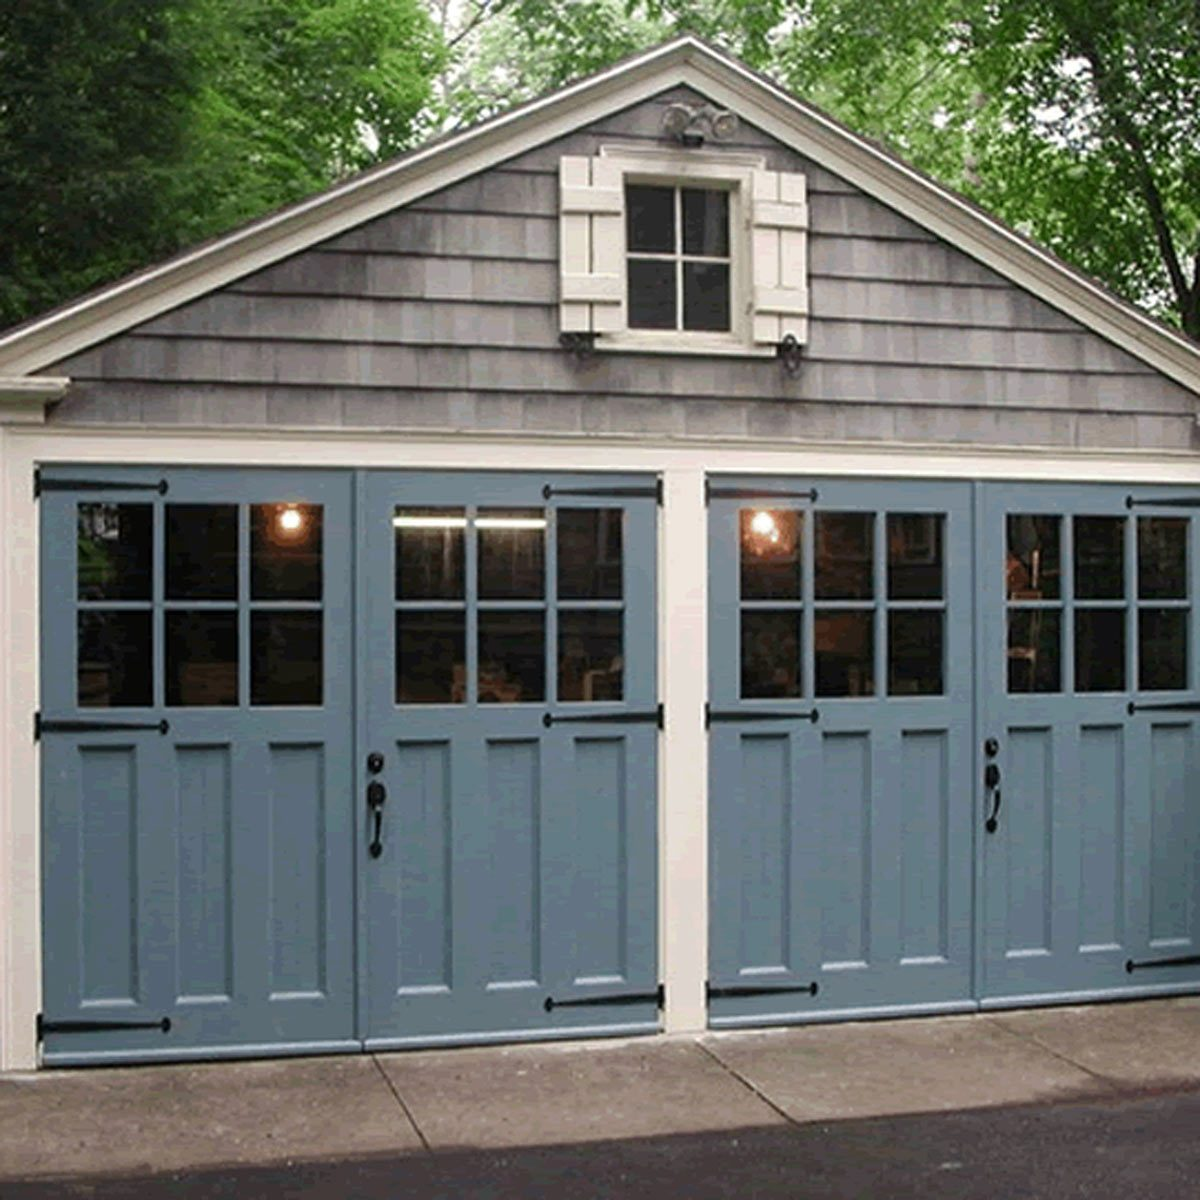 15 House Painting Ideas That Improve Curb Appeal  The Family Handyman